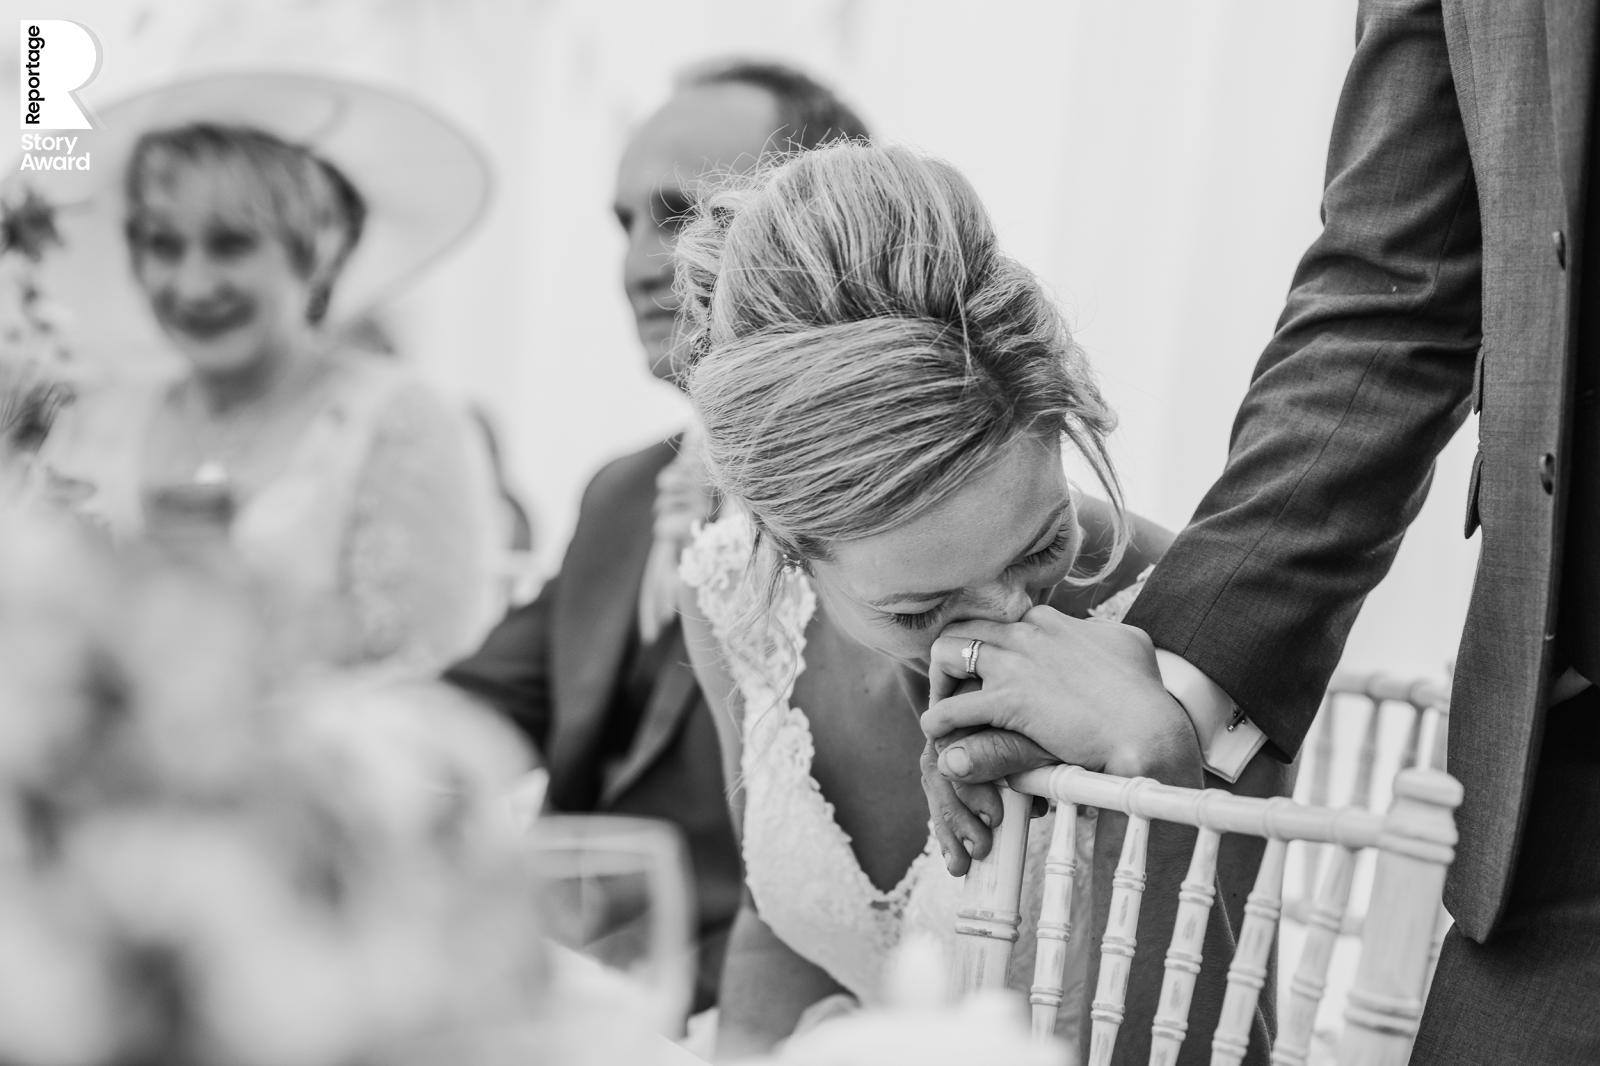 an emotional bride squeezes her husbands hand during his speech. Bw photo